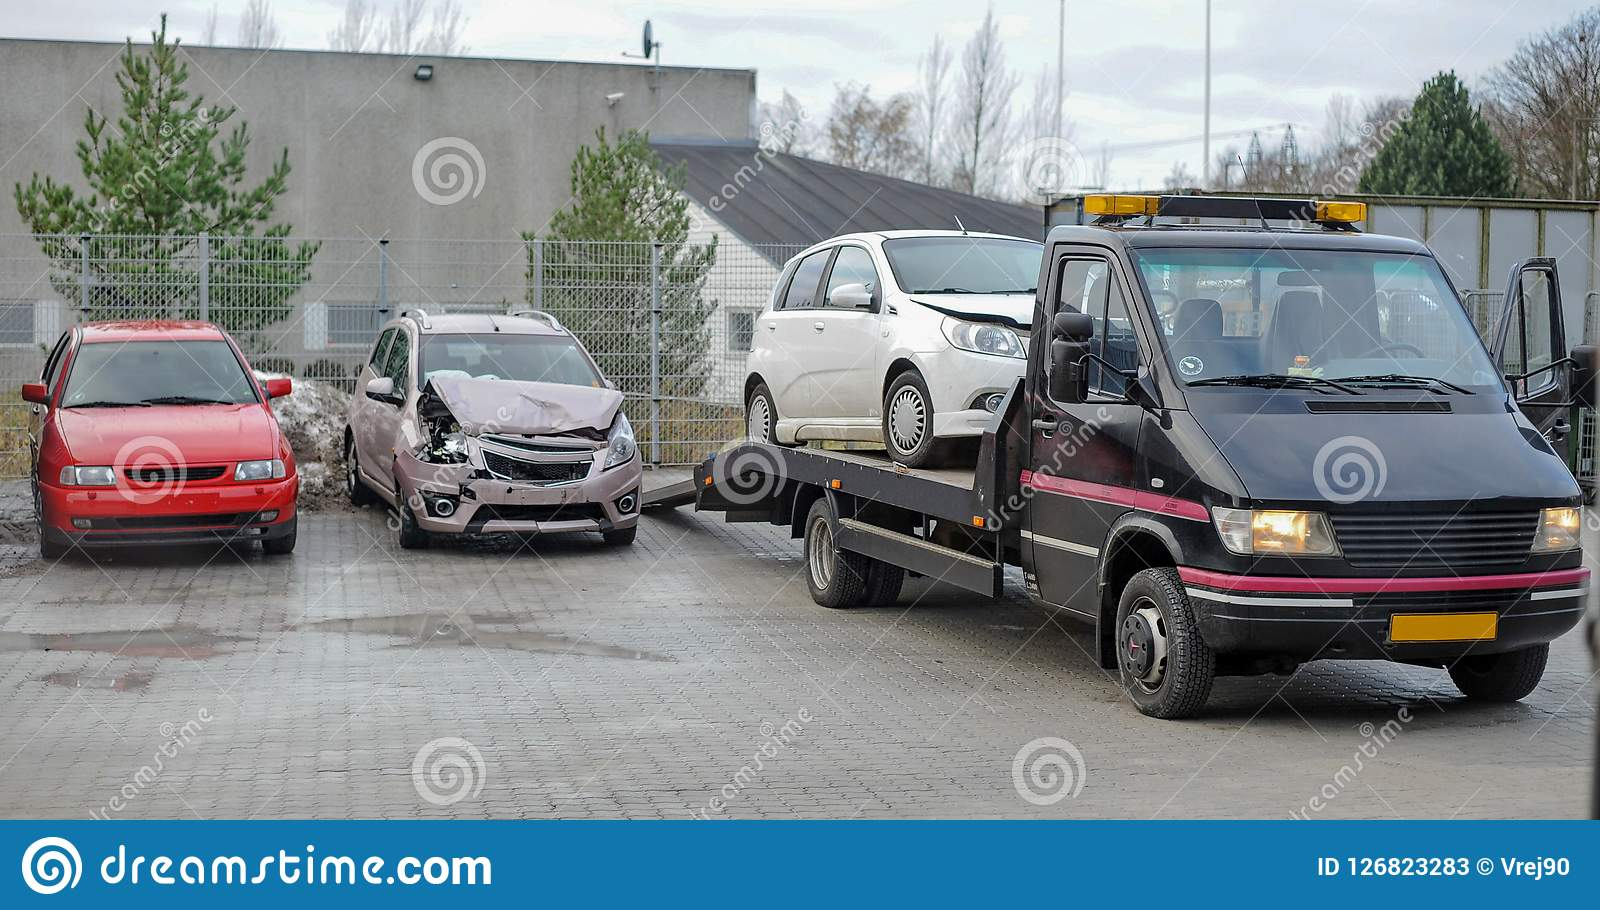 Broken Car On Tow Truck After Traffic Accident Stock Image